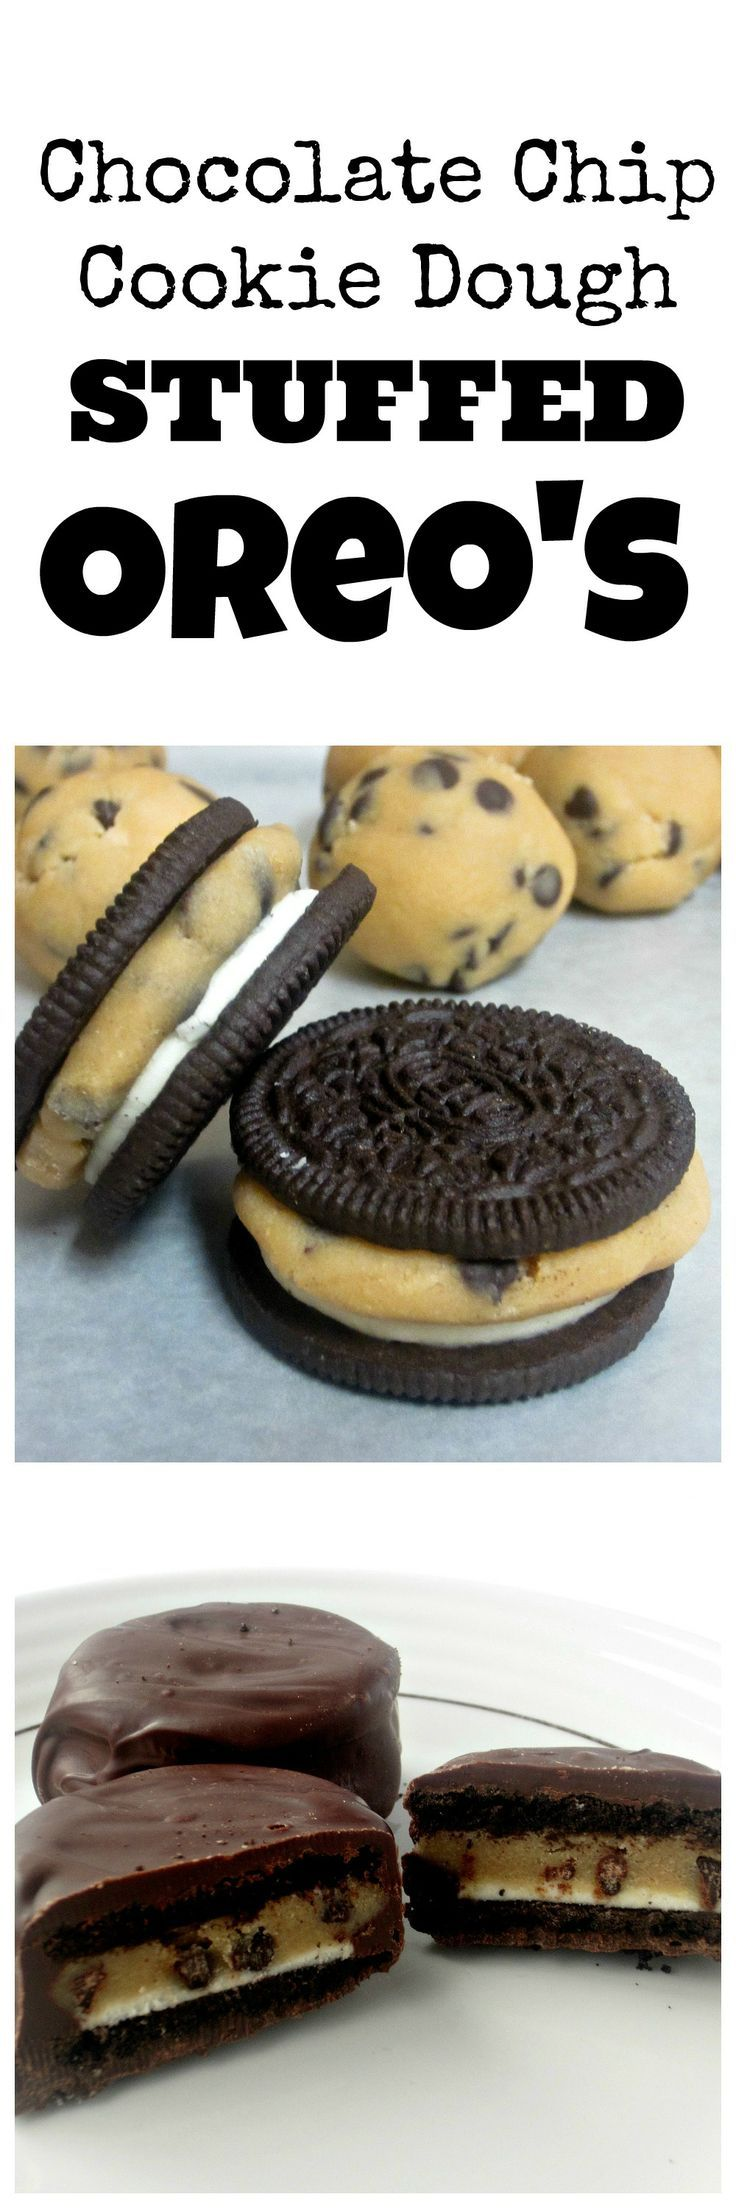 Chocolate Chip Cookie Dough Stuffed Oreos - crazy indulgent bitze-sized chocolate dessert